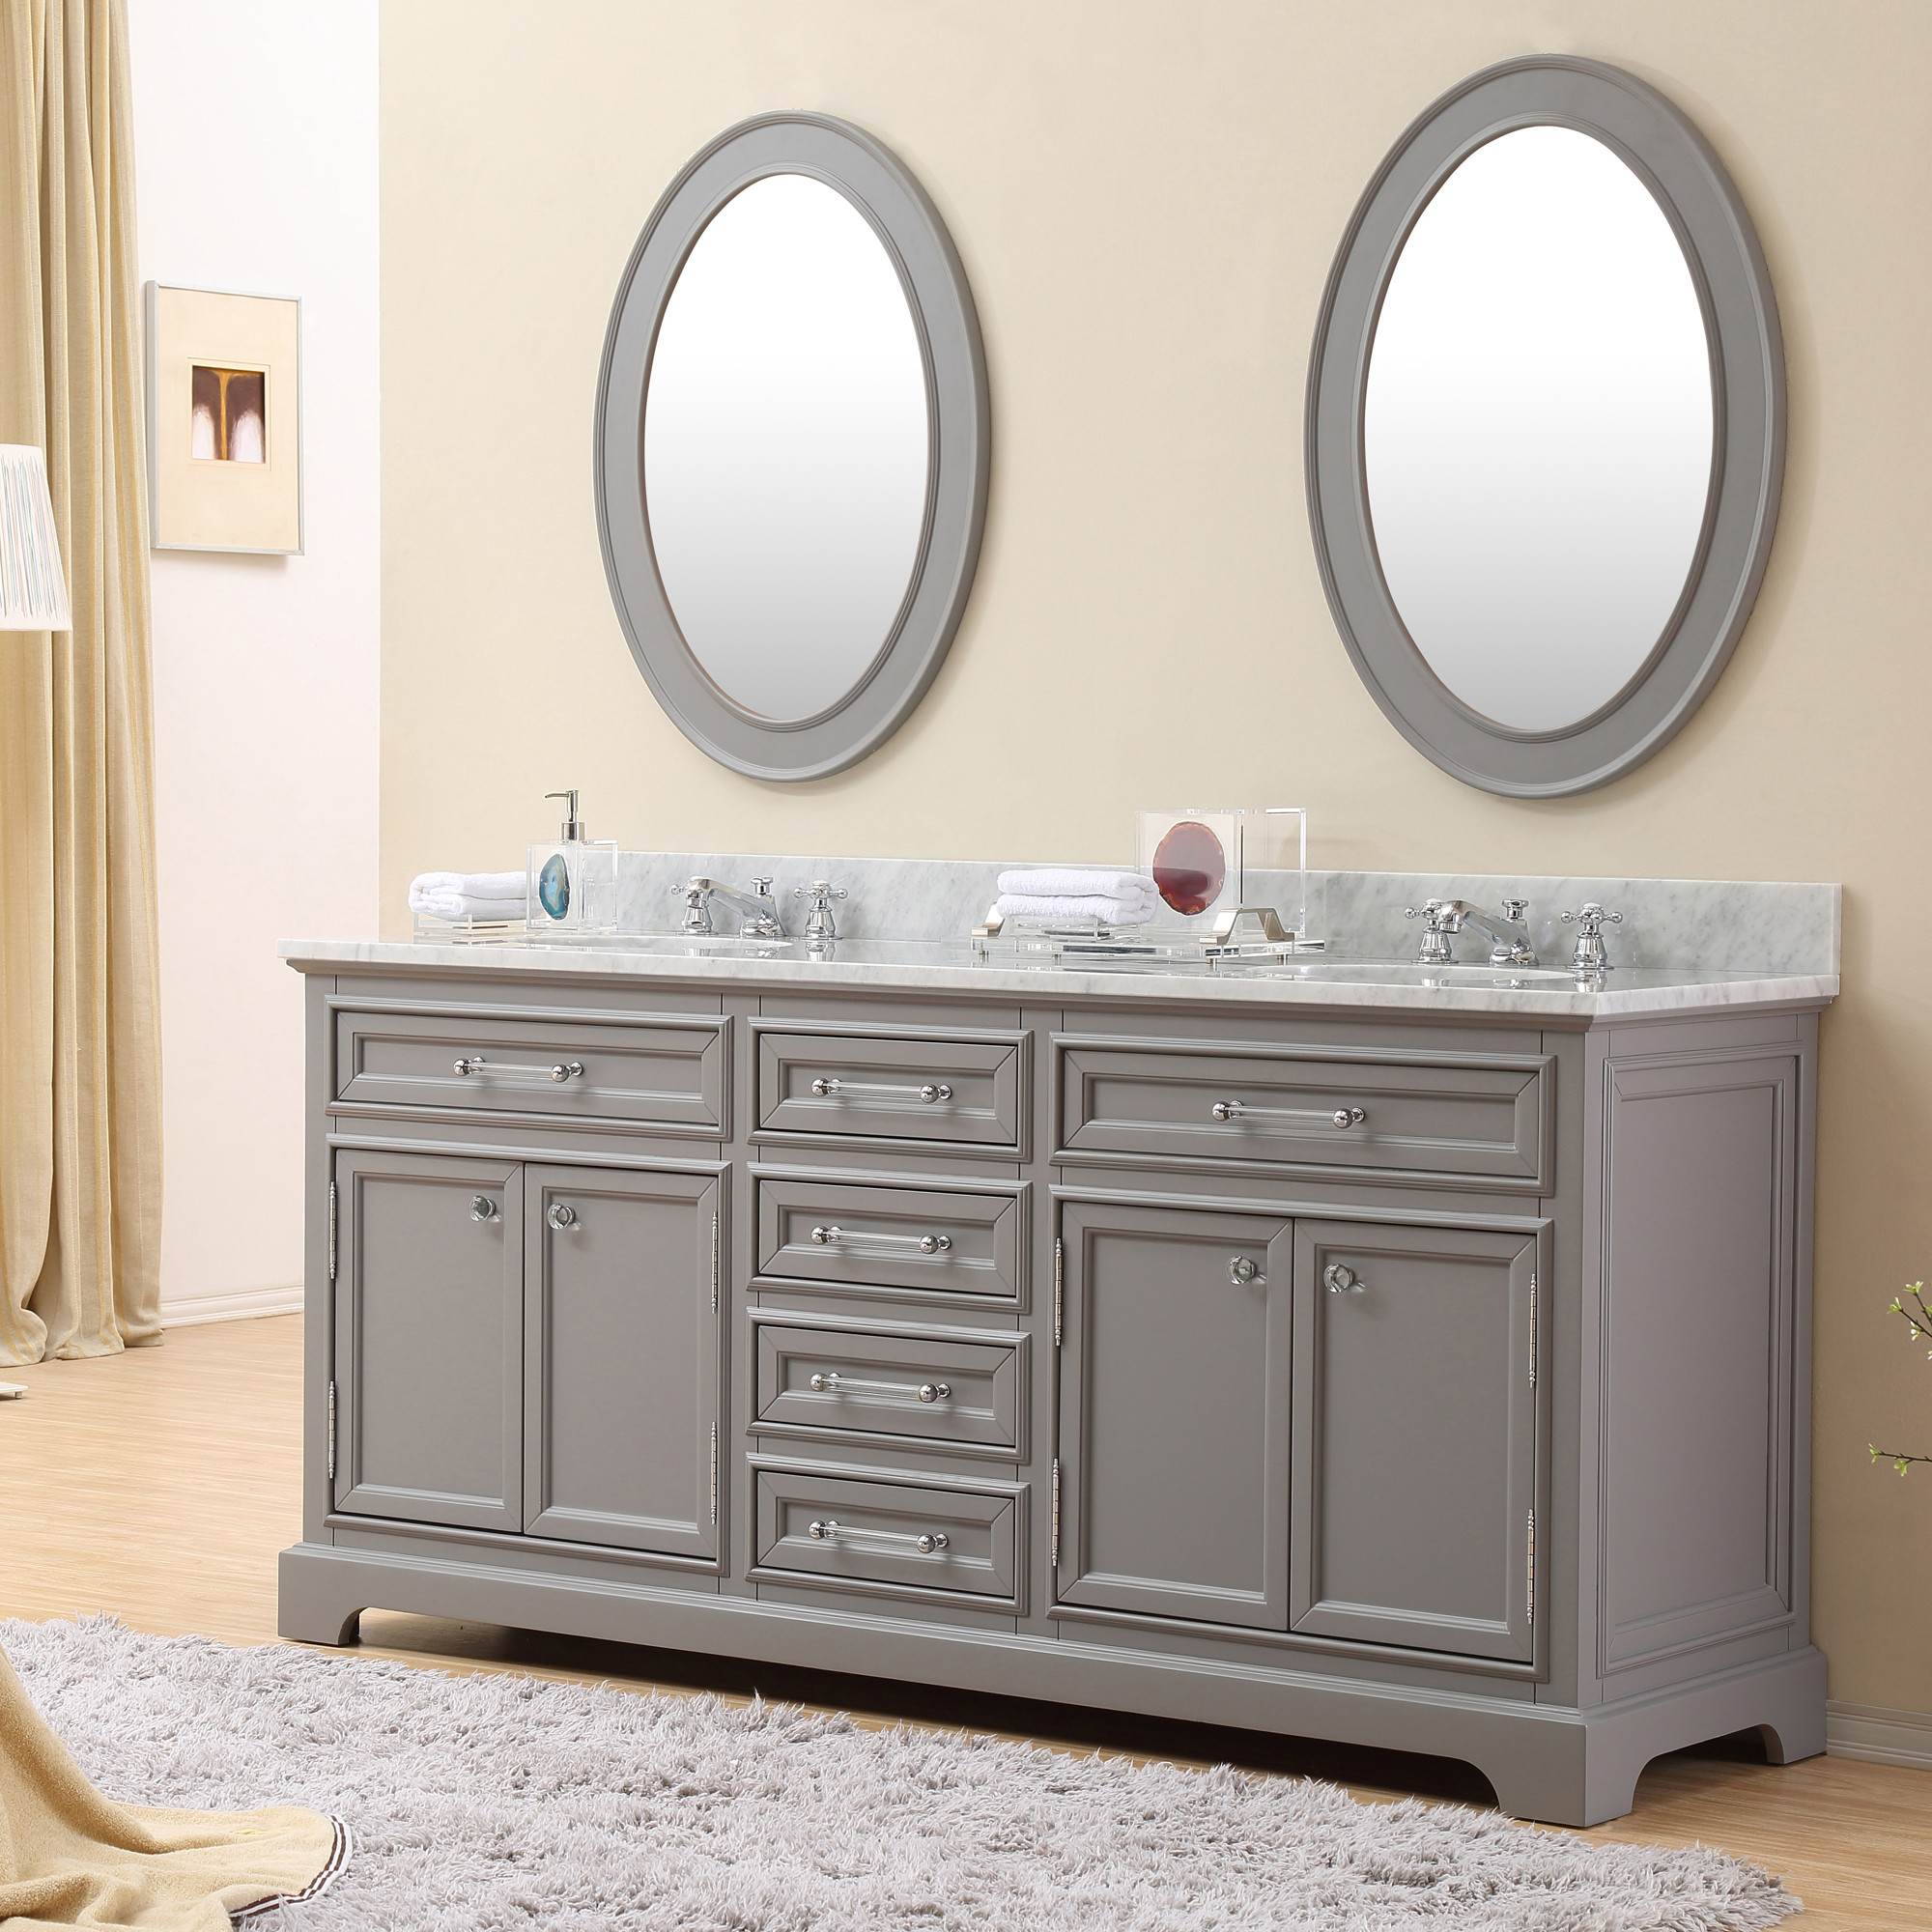 gray double sink vanity. carenton 72 inch traditional double sink bathroom vanity gray finish